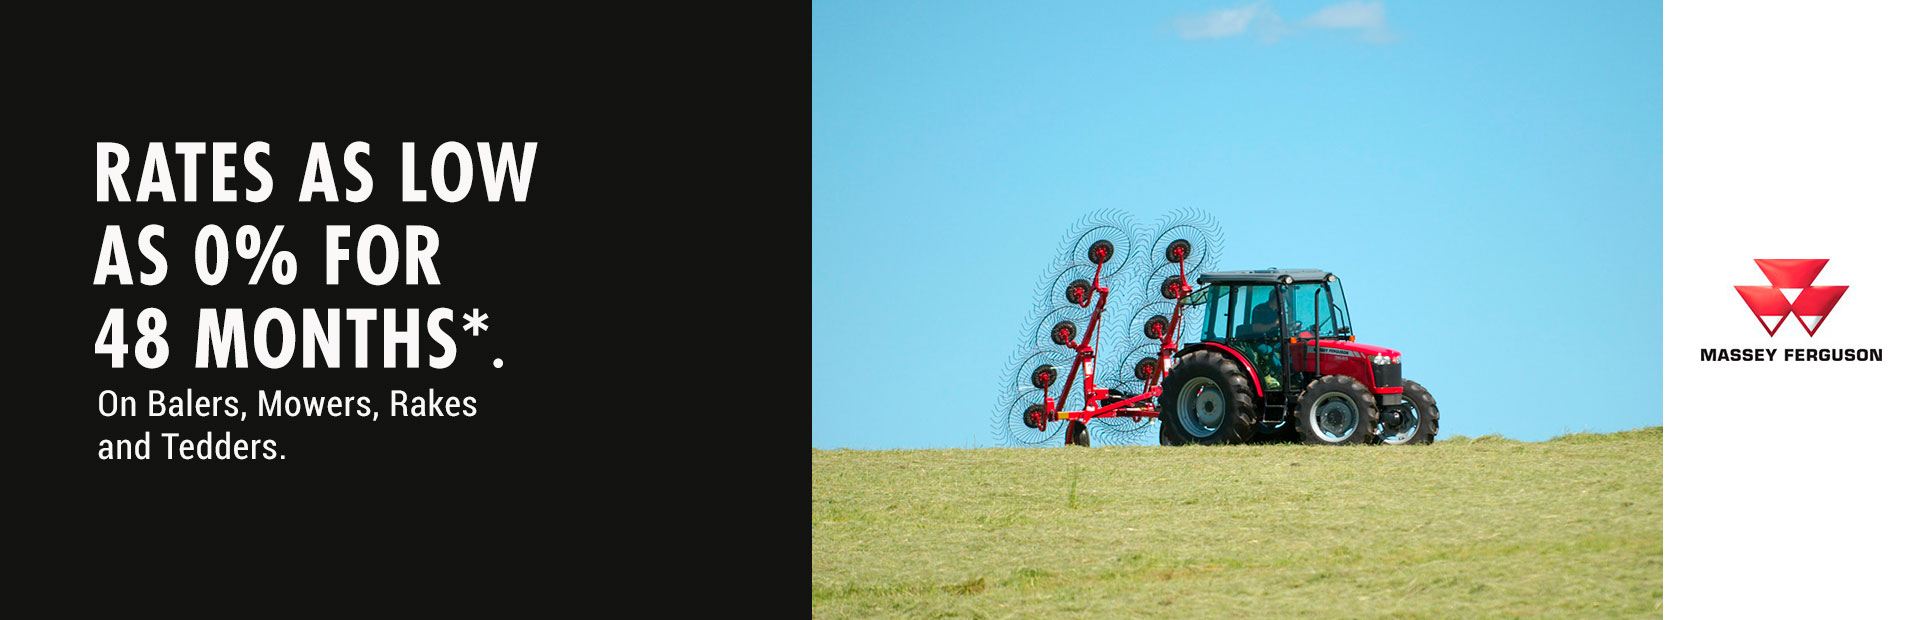 Massey Ferguson: 0% for 48 Months on Balers, Mowers, Rakes, Tedders